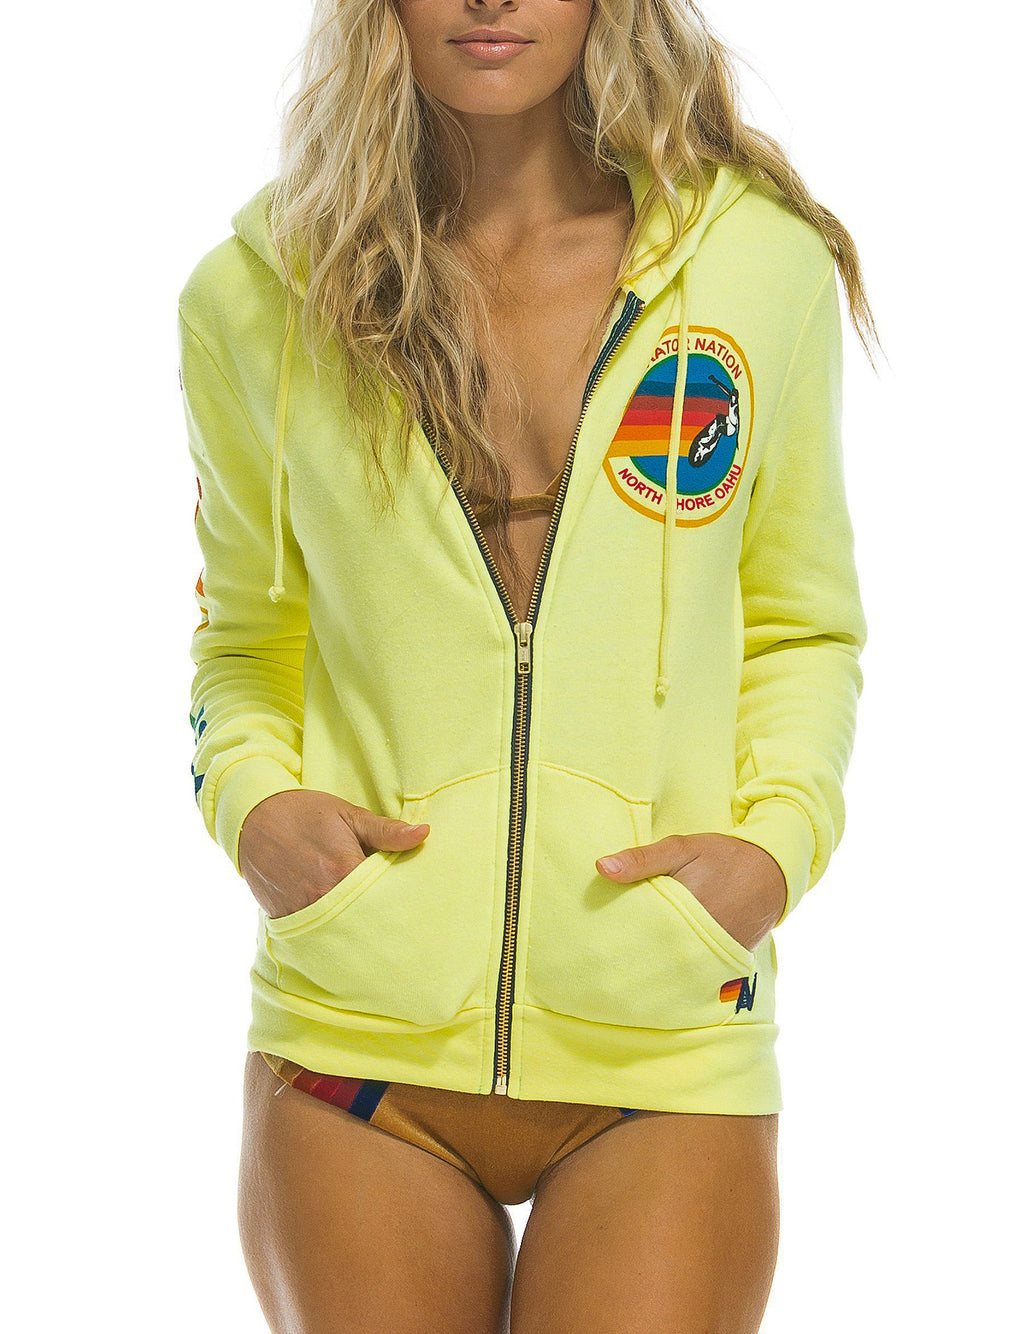 Aviator Nation Zip Hoodie in Neon Yellow